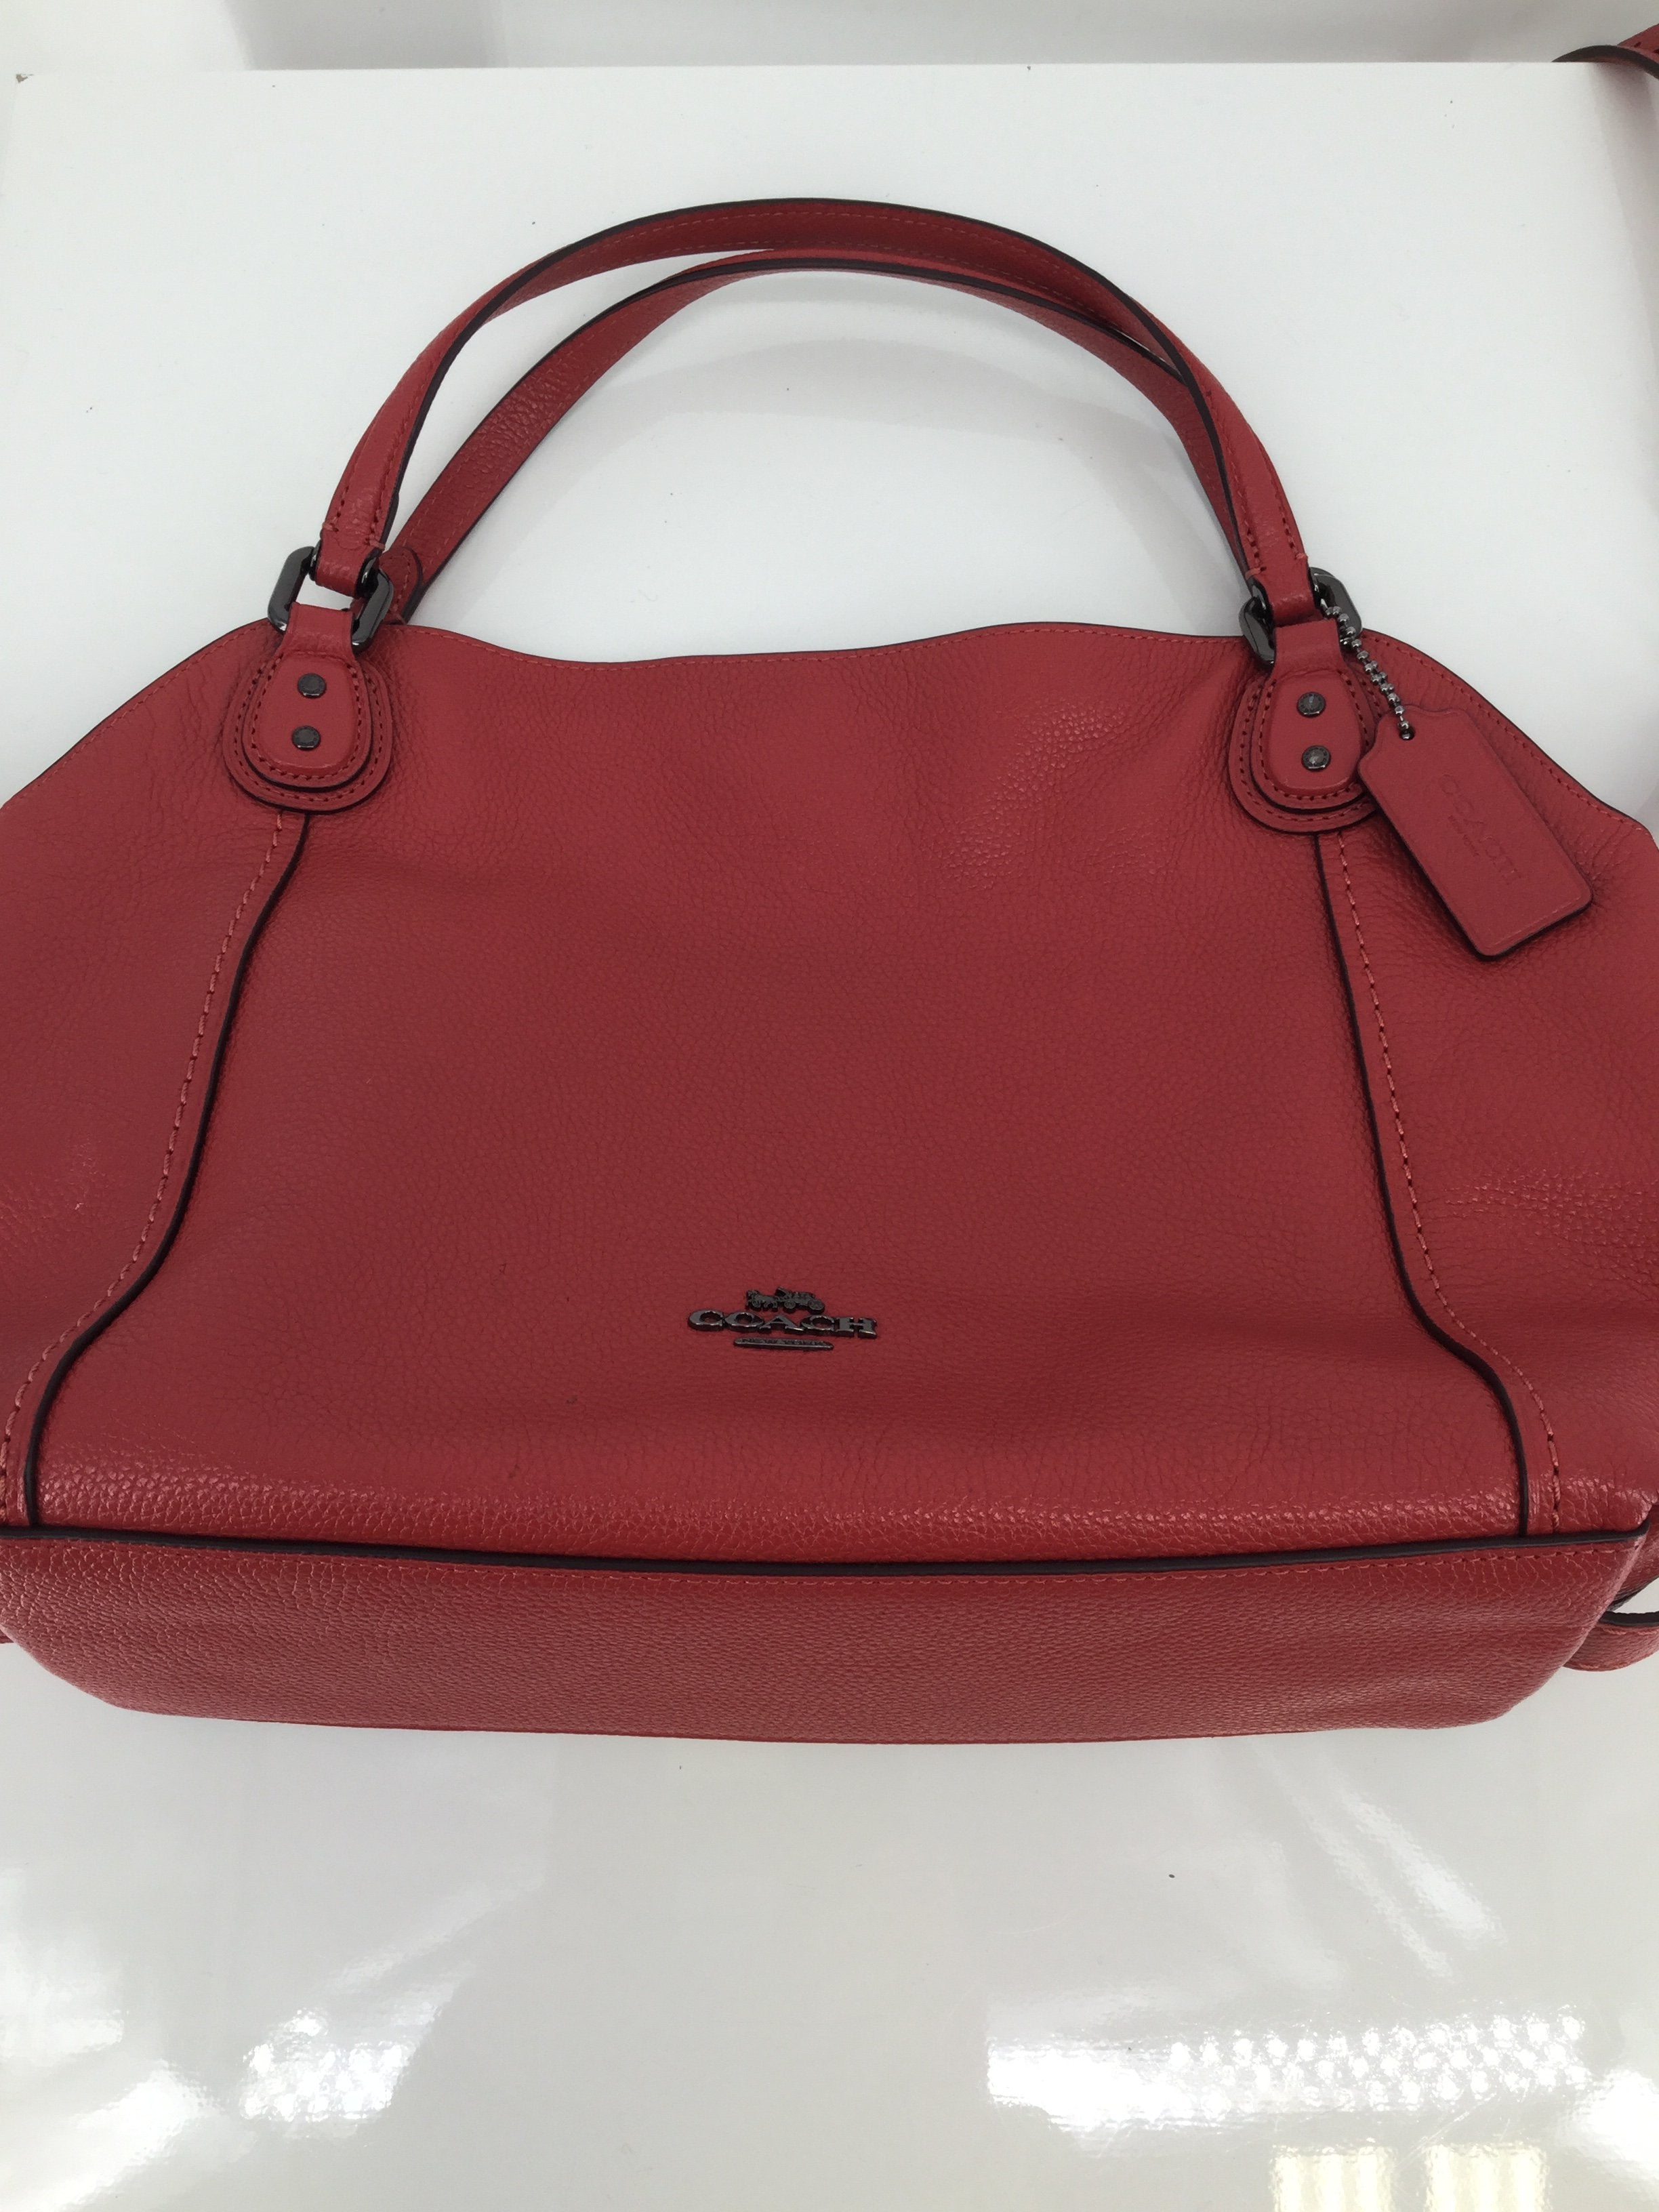 Coach Salmon Leather Designer Handbag - <P>THIS SALMON COLORED COACH HANDBAG IS BEAUTIFUL! THE OUTSIDE OF THIS BAG IS IN VERY GOOD CONDITION WITH VERY LITTLE WEAR. INSIDE, THERE ARE SOME INK STAINS (SEE PHOTOS). THIS BAG HAS SHOULDER STRAPS AND A REMOVABLE CROSSBODY STRAP.</P>